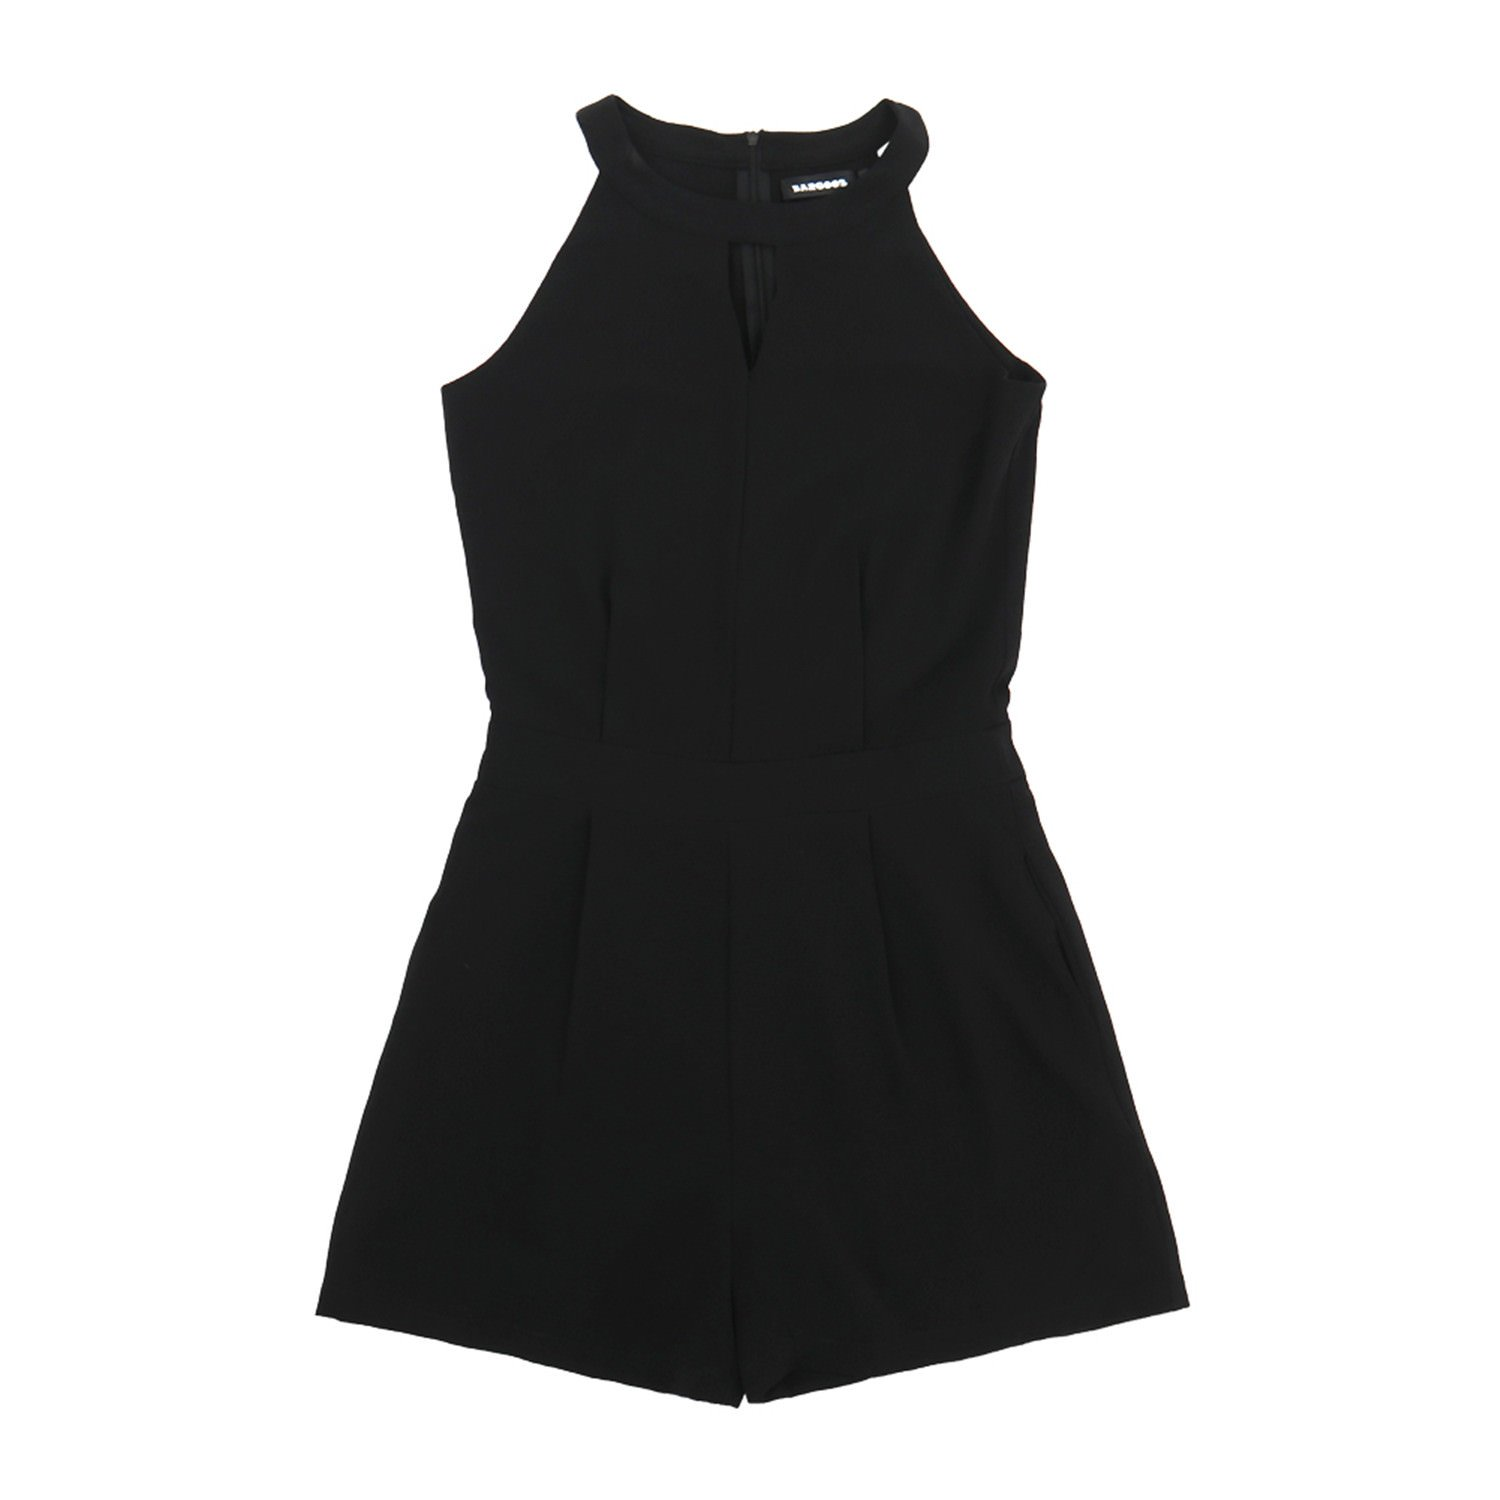 BARGOOS Women All-Black Cut Out Halter Neck Rompers Sleeveless Playsuit Summer Casual High Waist Mini Jumpsuits by BARGOOS (Image #2)